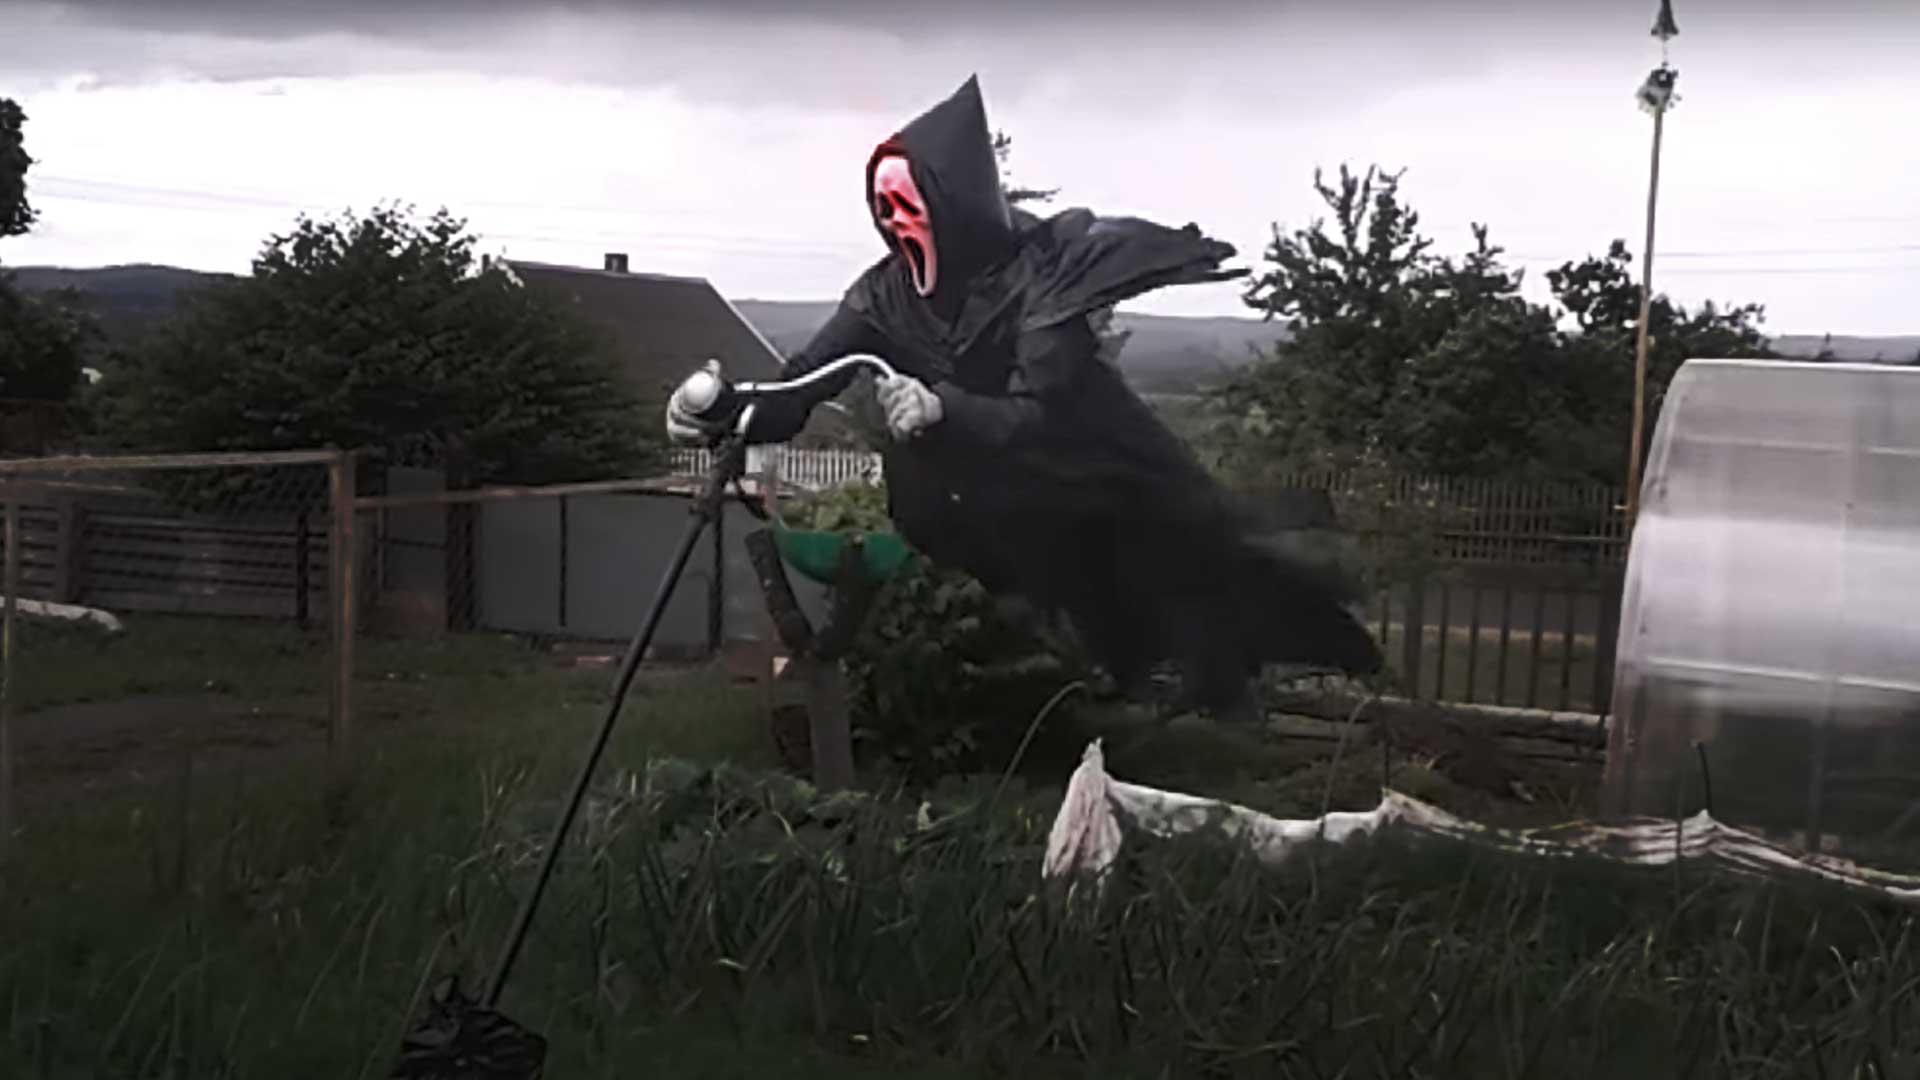 Office space tps report quote - This Ghostface Scarecrow Will Terrorize Your Neighborhood